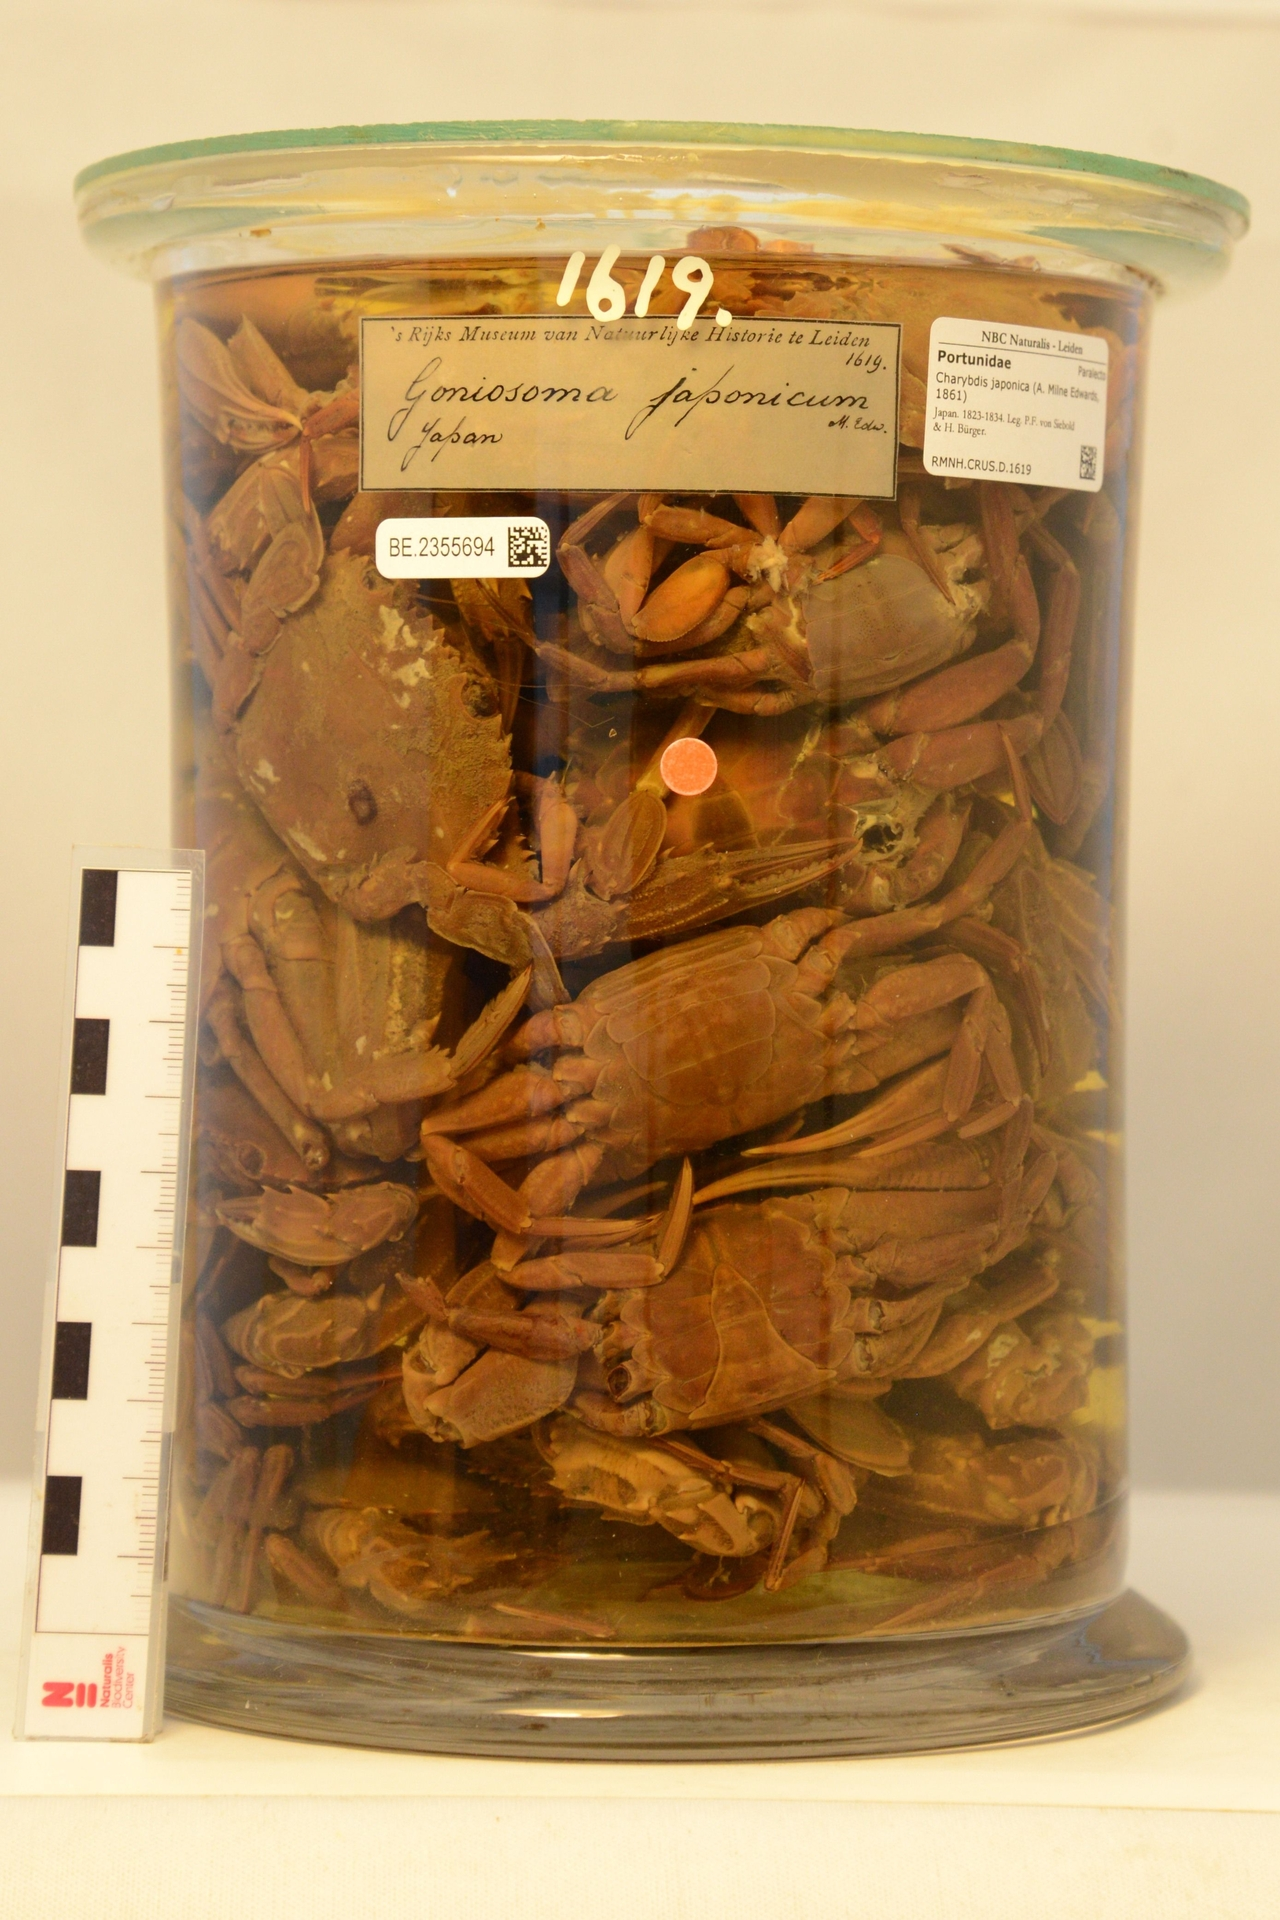 RMNH.CRUS.D.1619 | Charybdis japonica (A. Milne Edwards, 1861)